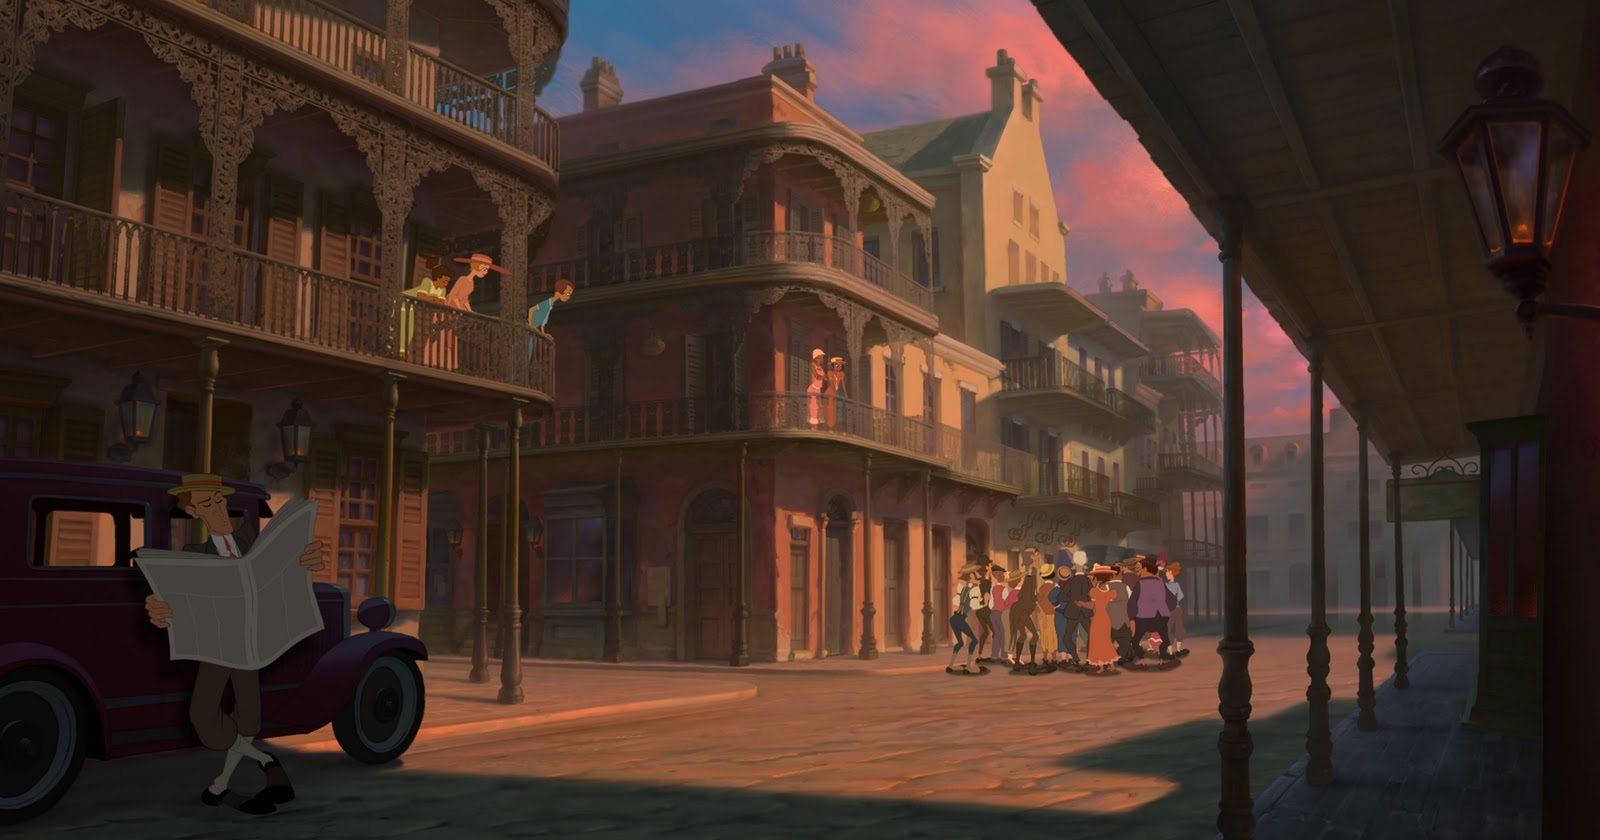 first impressions: the princess and the frog